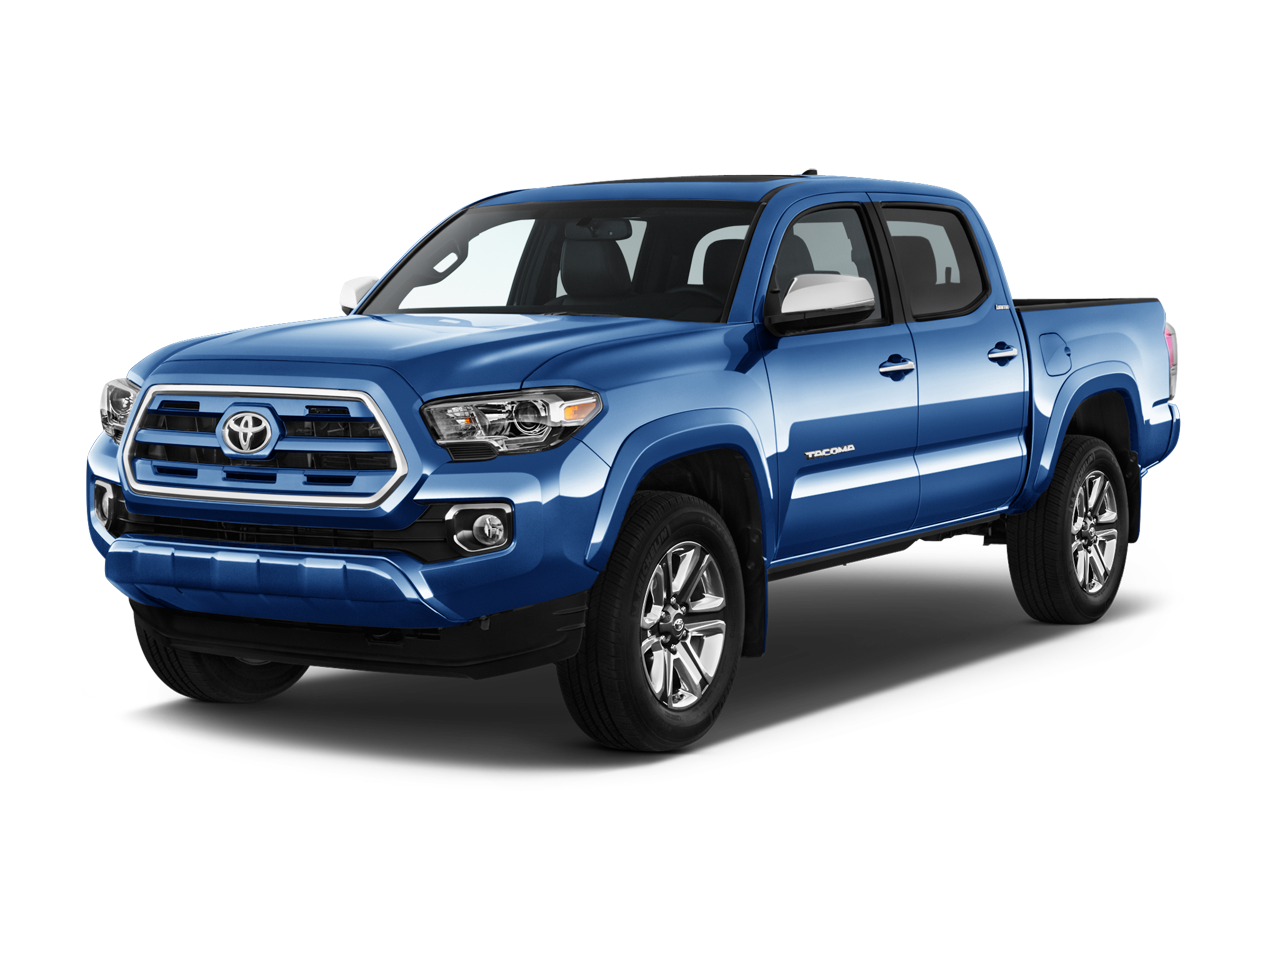 Crown Toyota Lawrence Ks >> New 2017 Toyota Tacoma Limited Double Cab - Near Lawrence ...